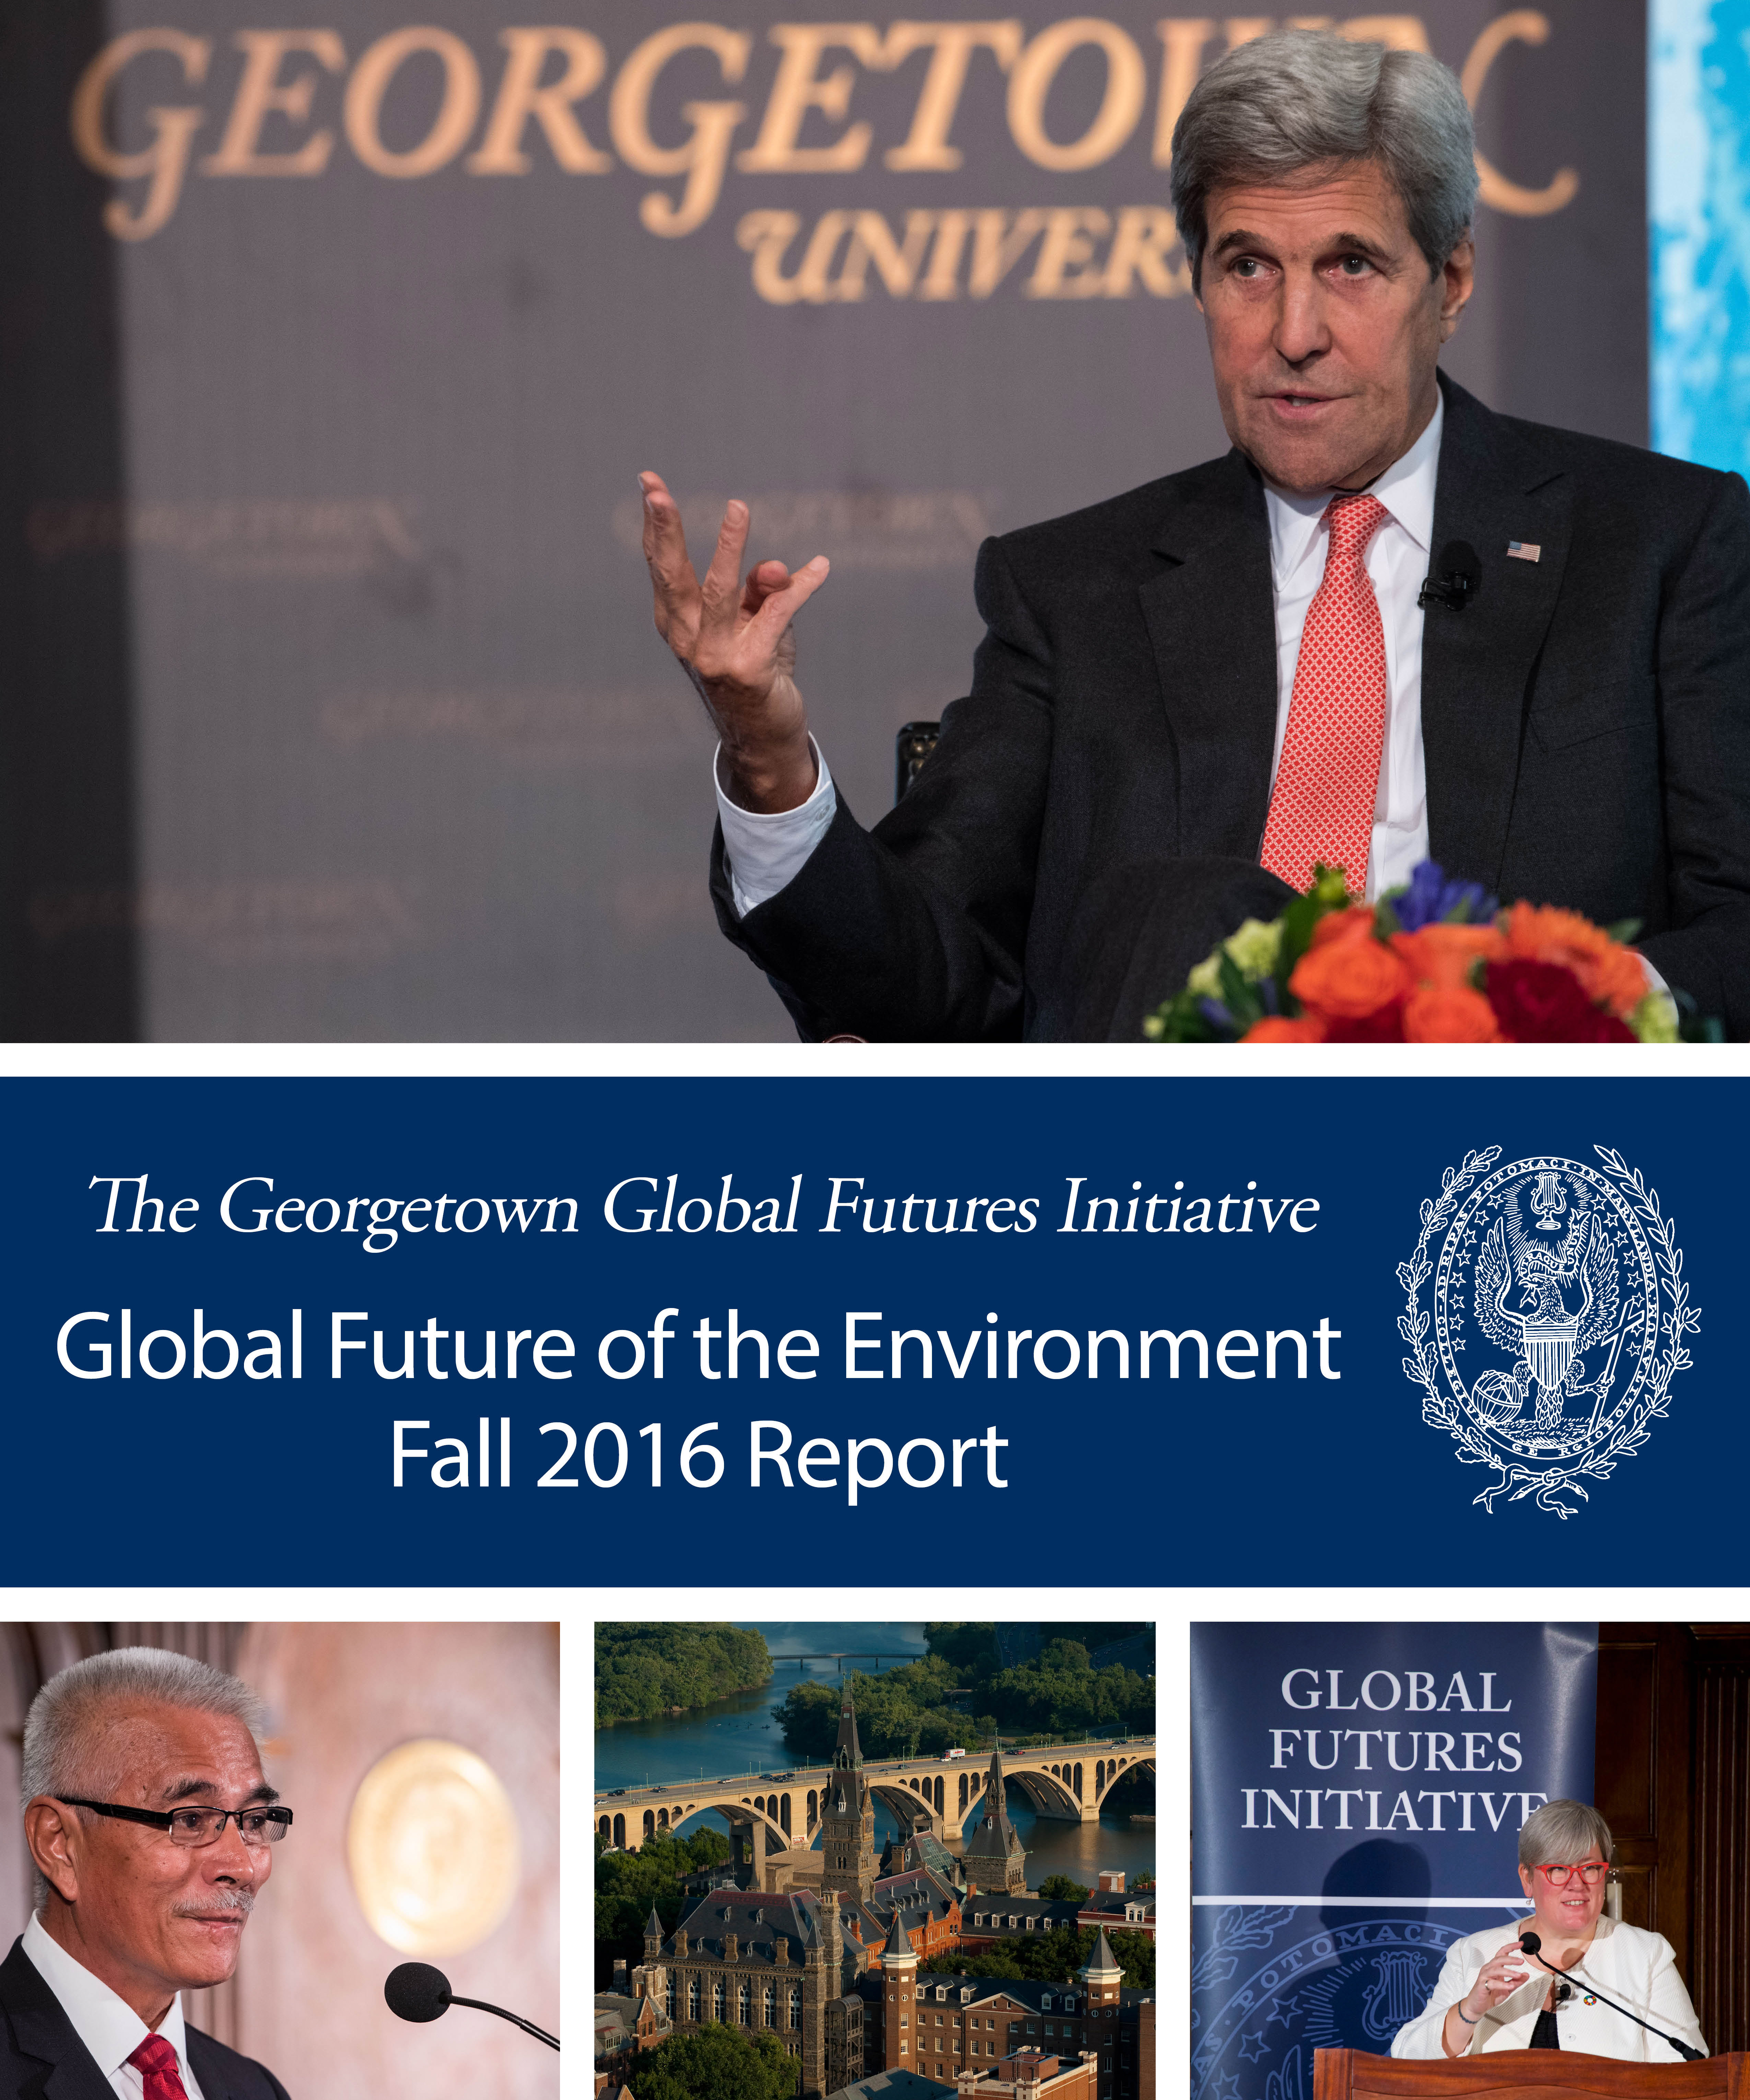 Global Future of the Environment Fall 2016 Report